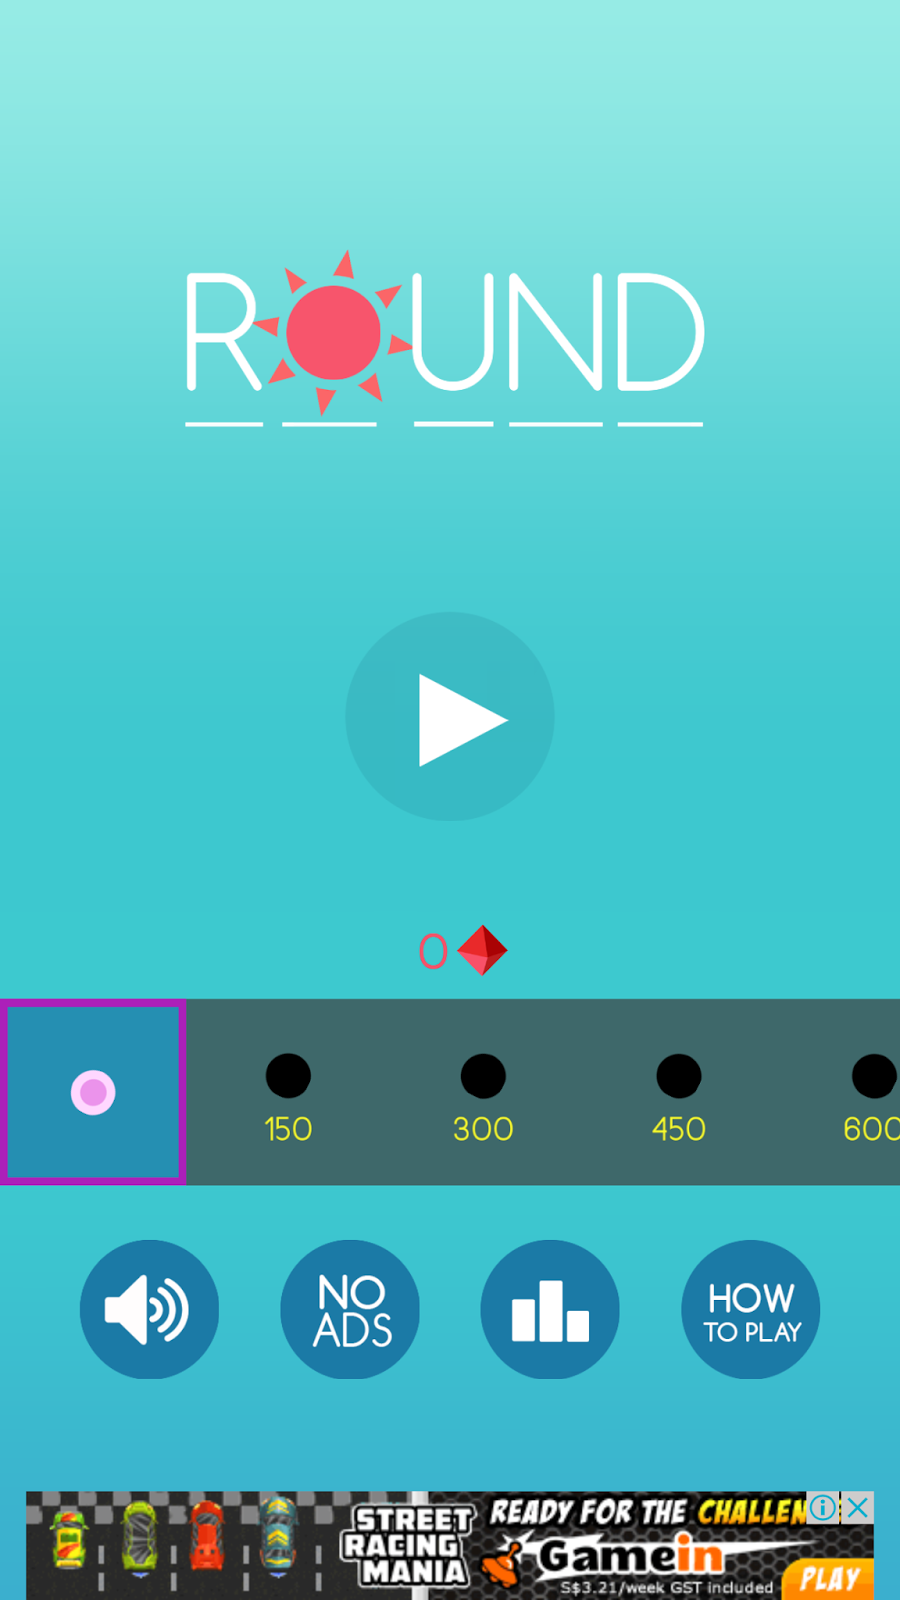 FREE IPHONE / IPAD / IOS APPS and GAMES Daily: [FREE iPHONE GAME